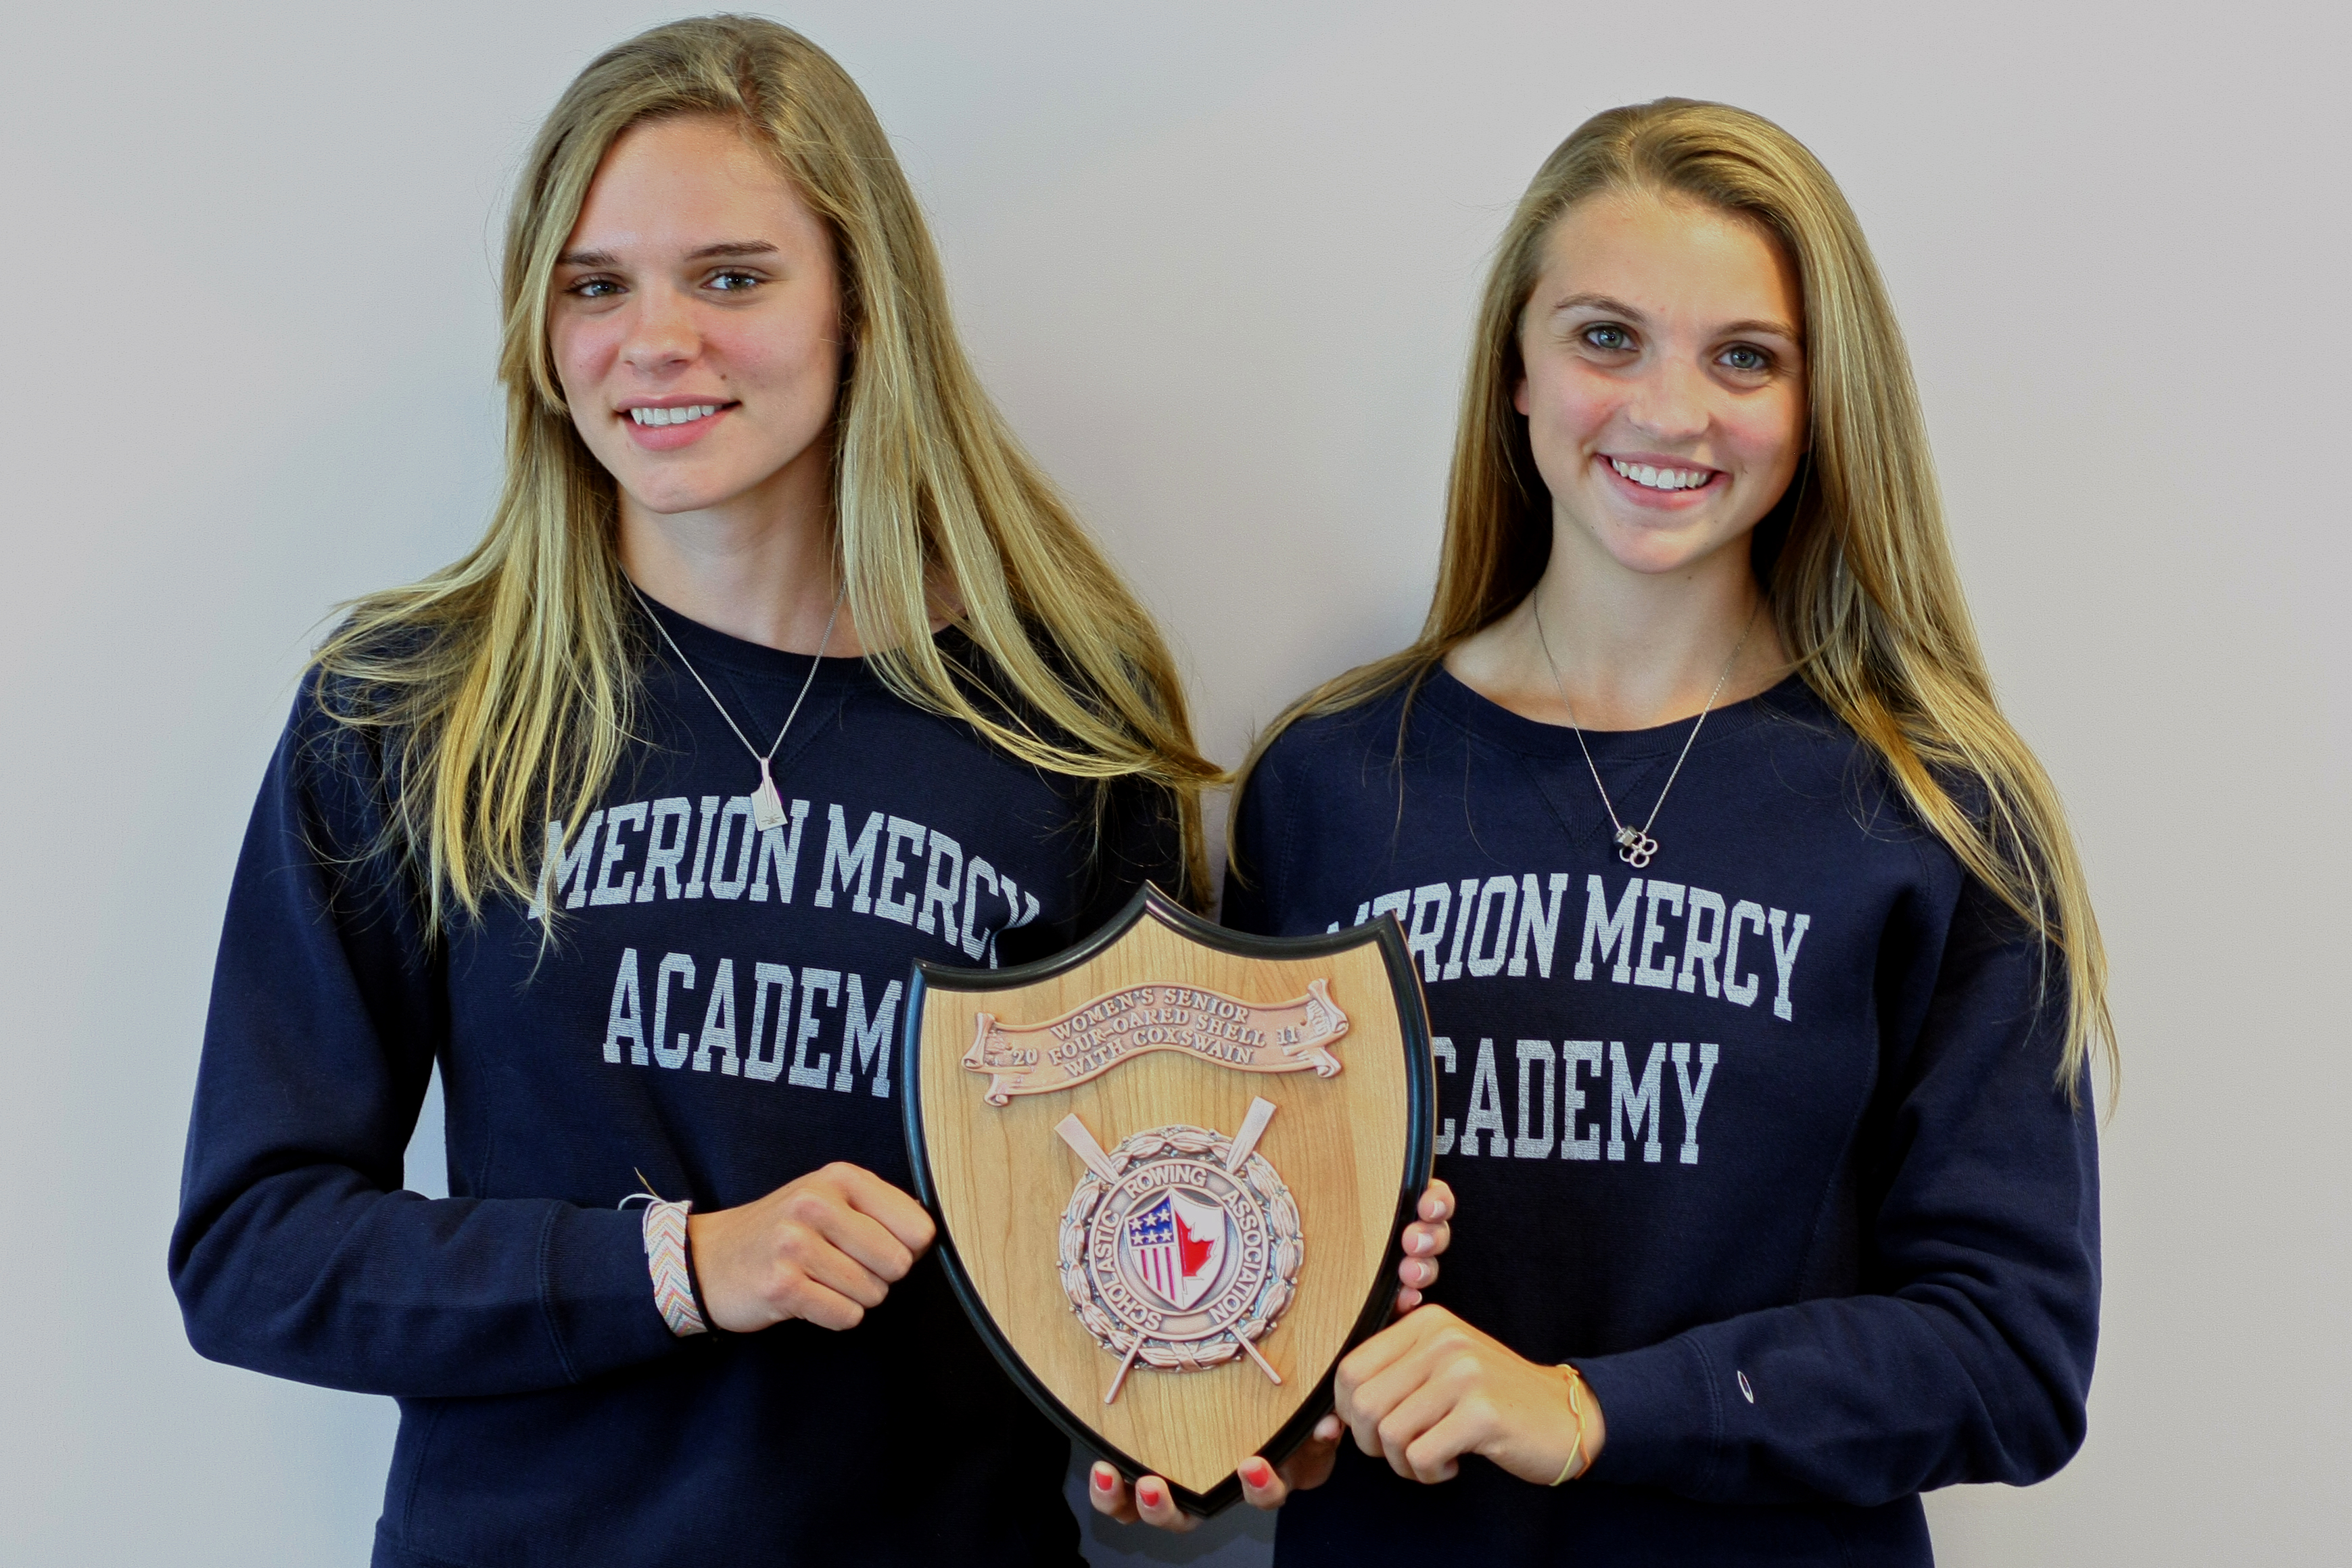 Merion Mercy seniors Amanda Lorei (left) and Sara Romano, with the championship plaque that the Golden Bears´ varsity four with coxswain won at the SRAA rowing nationals Saturday in Pennsauken, N.J. (Lou Rabito / Staff)